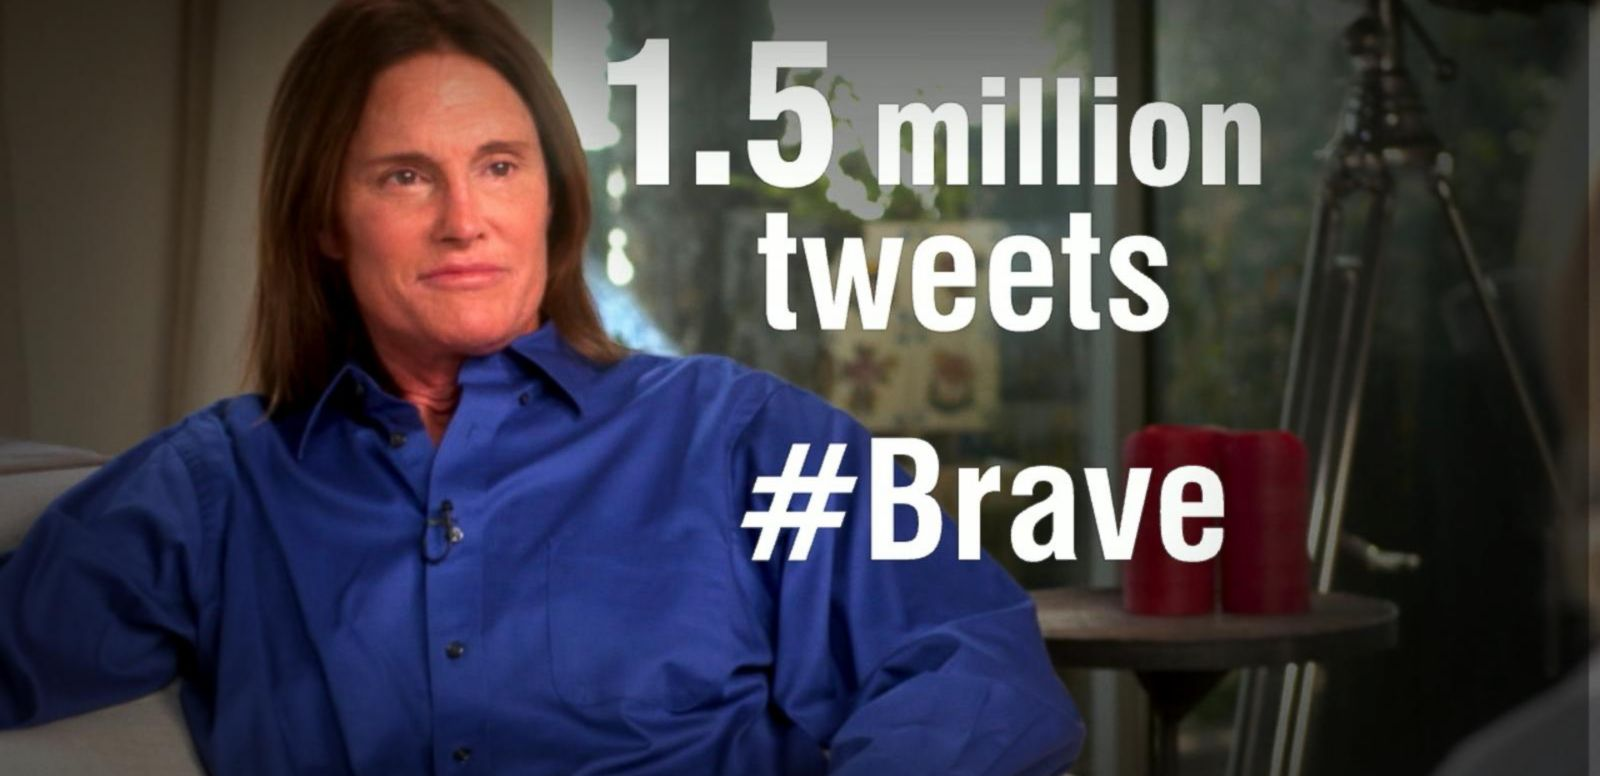 Bruce Jenner Interview Sparks a National Debate